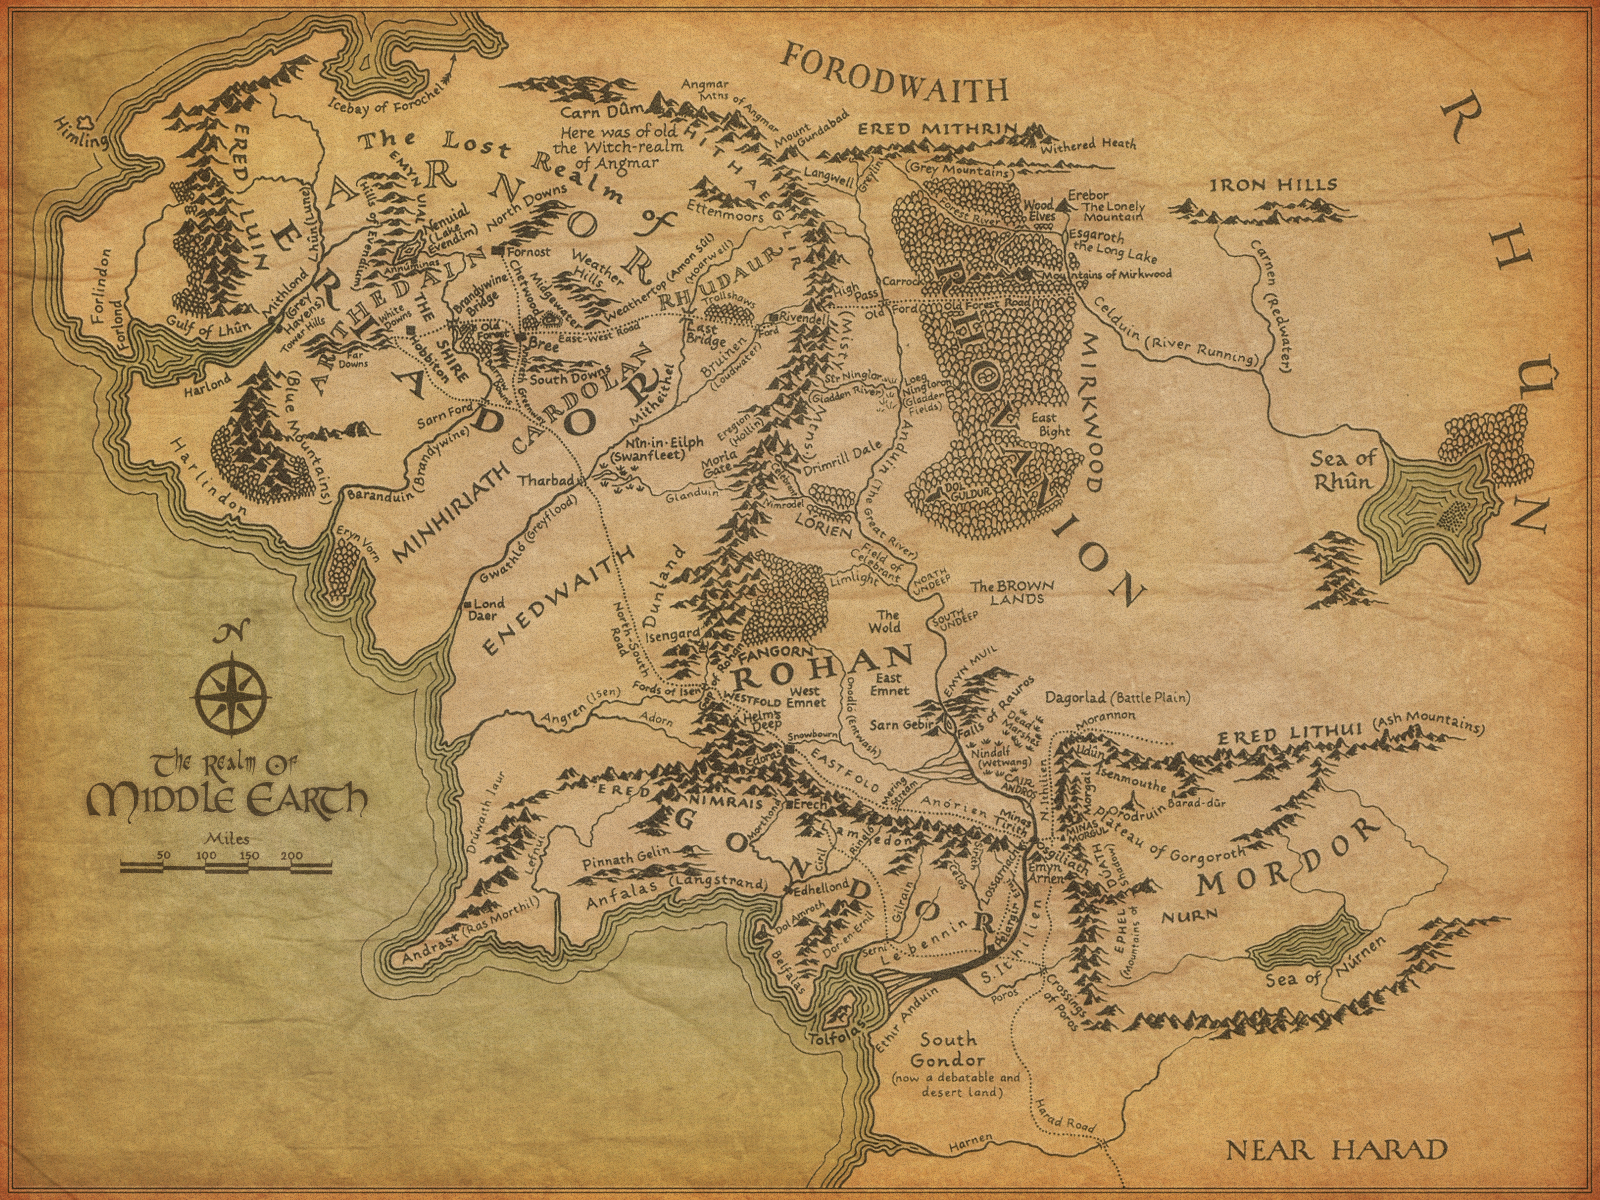 https://i2.wp.com/blog.lefigaro.fr/hightech/middle-earth-map.jpg